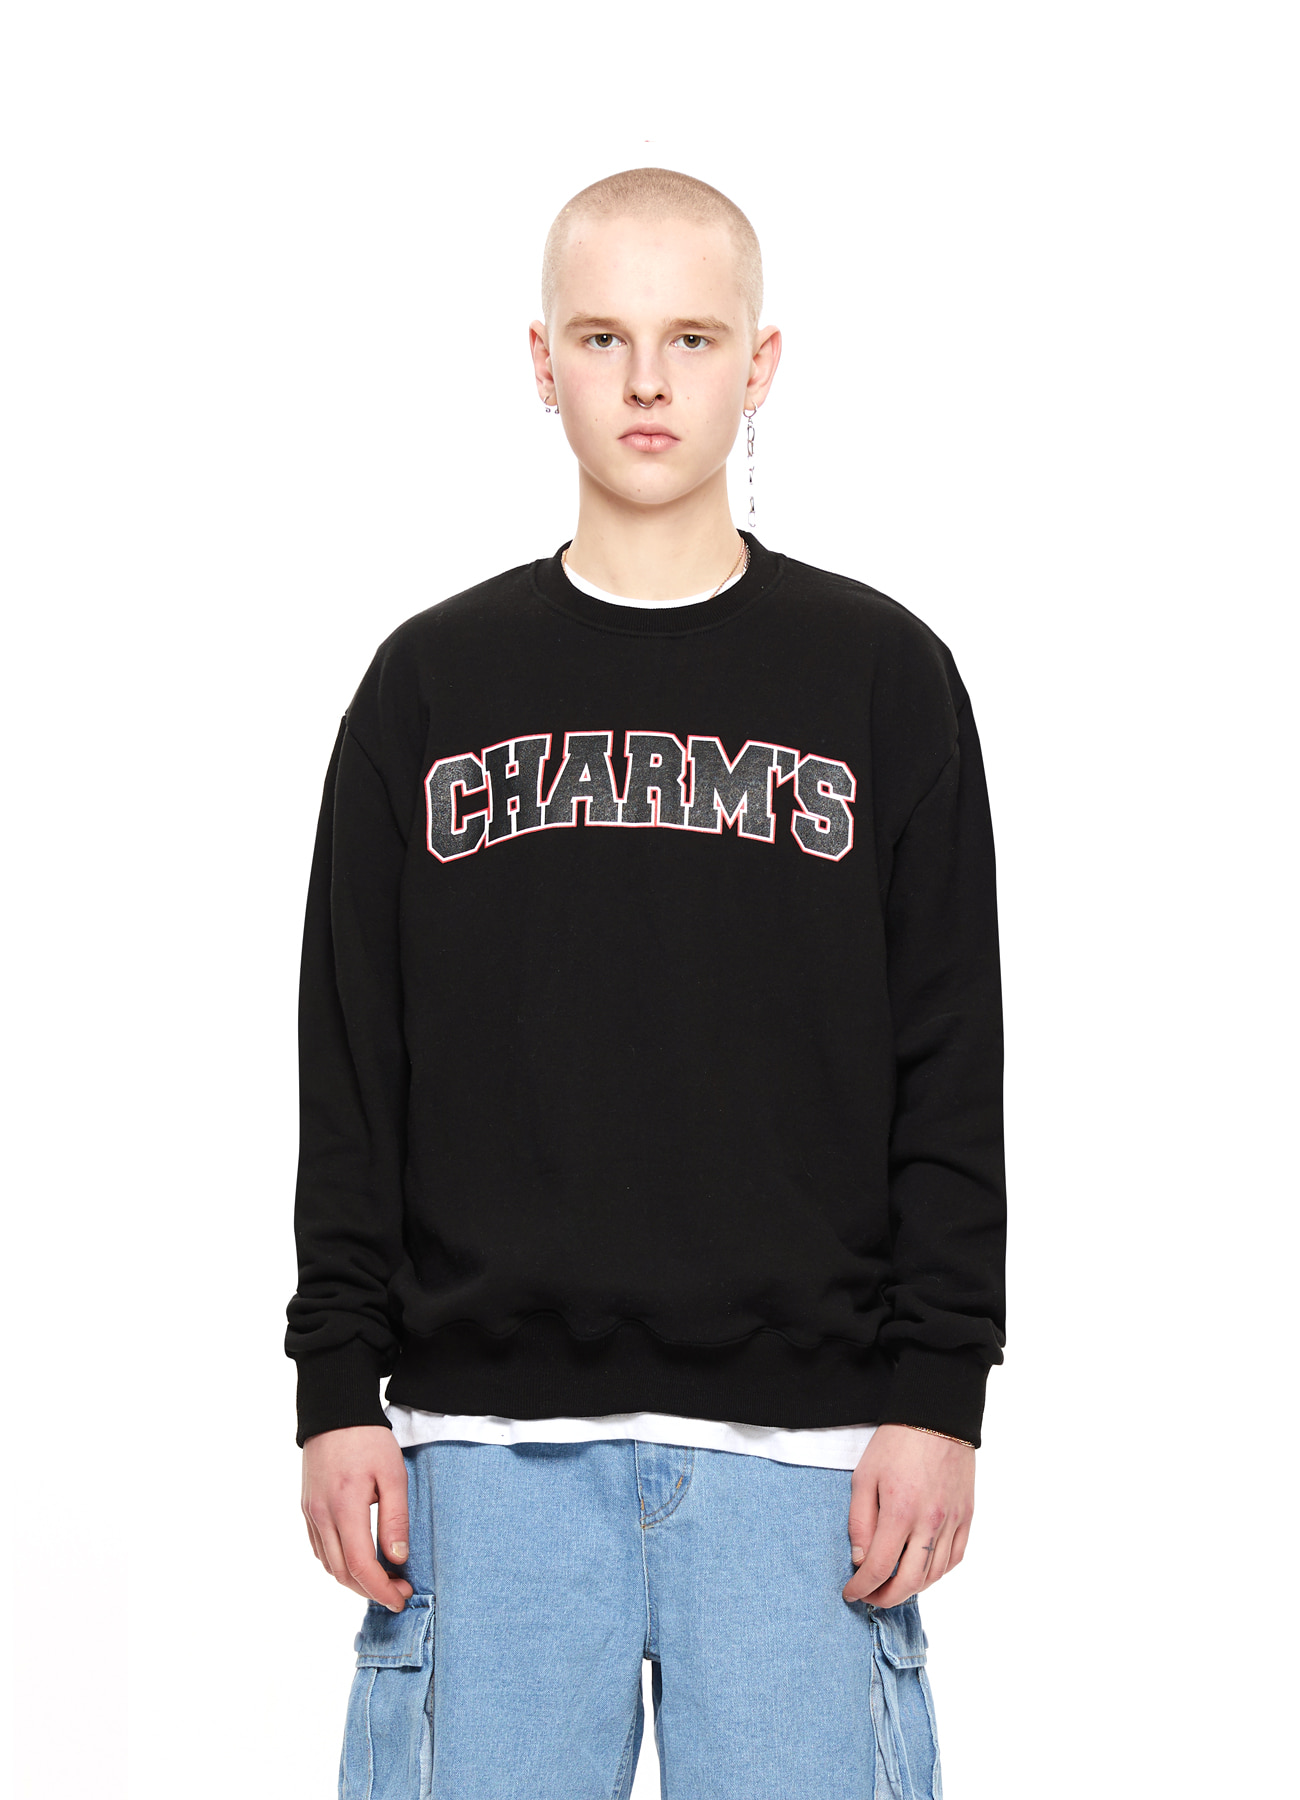 CHARMS BIG LOGO SWEATSHIRTS_BK